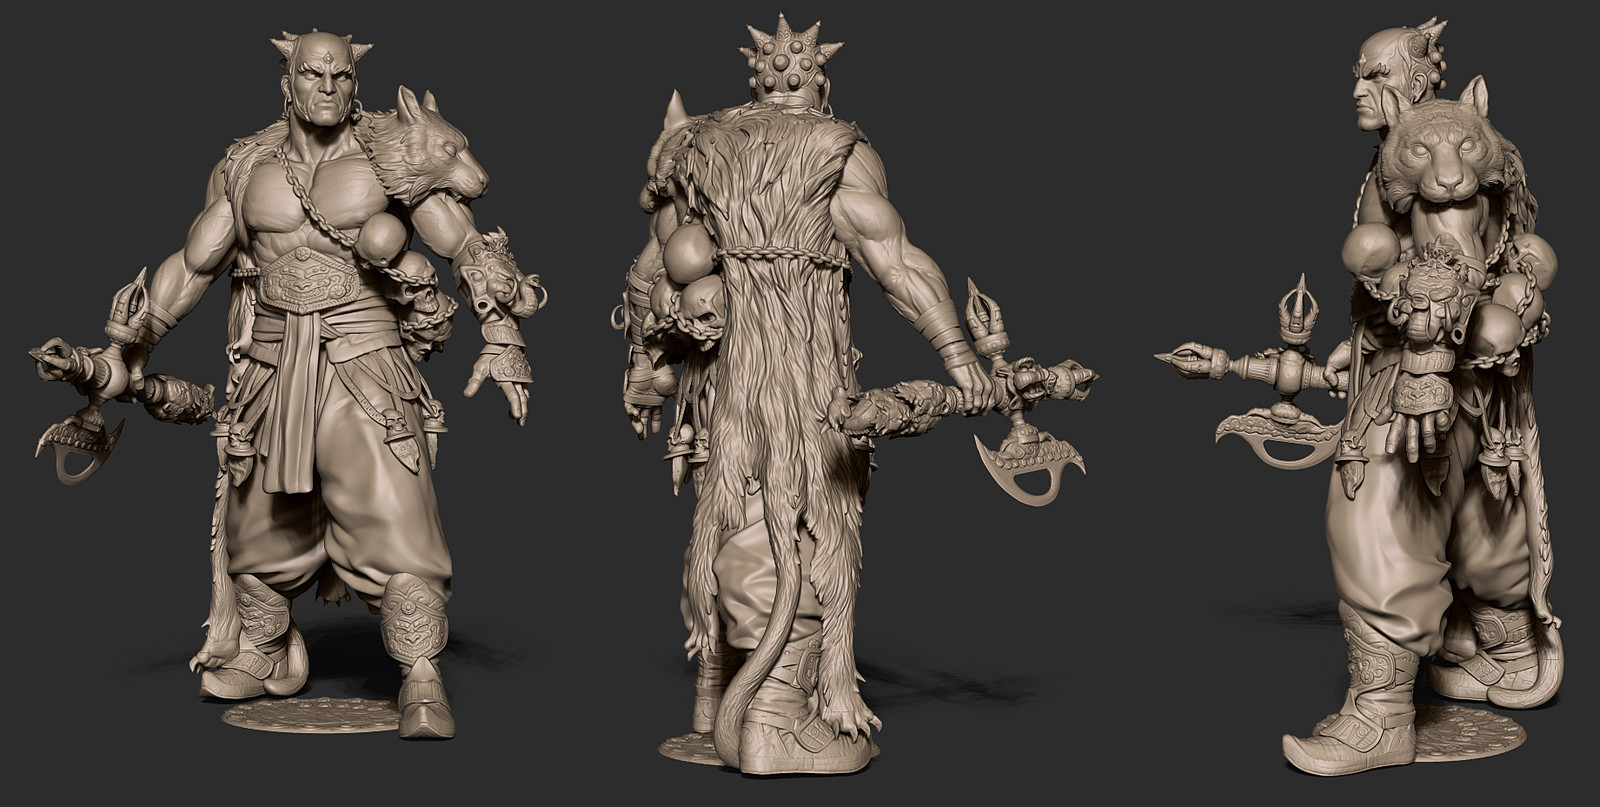 zbrush render of character